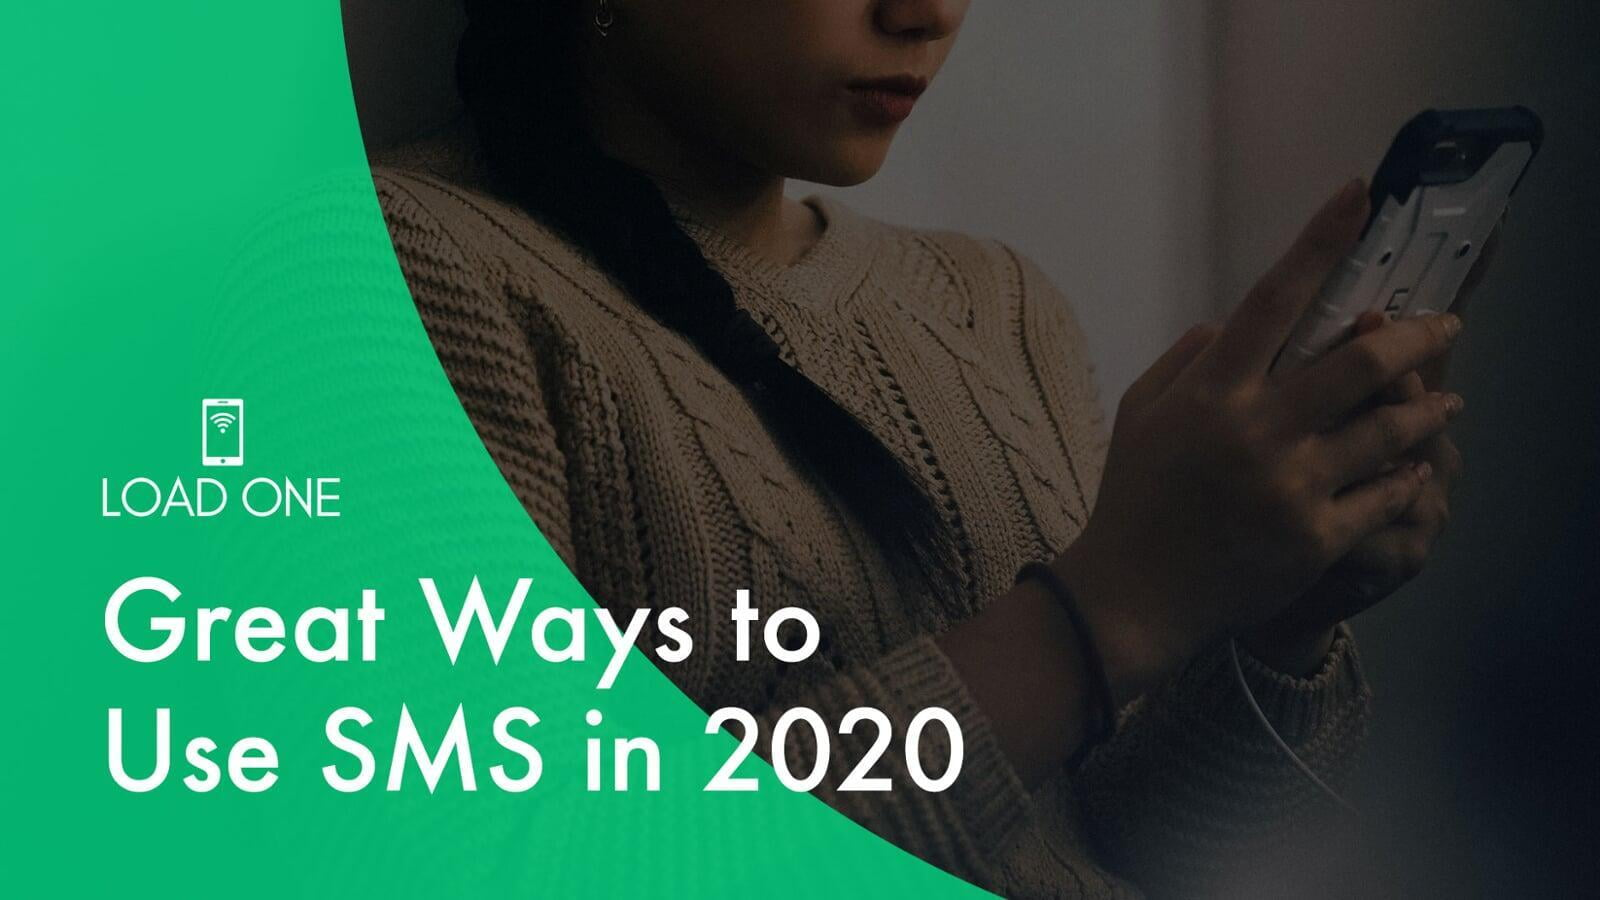 Great Ways to Use SMS in 2020